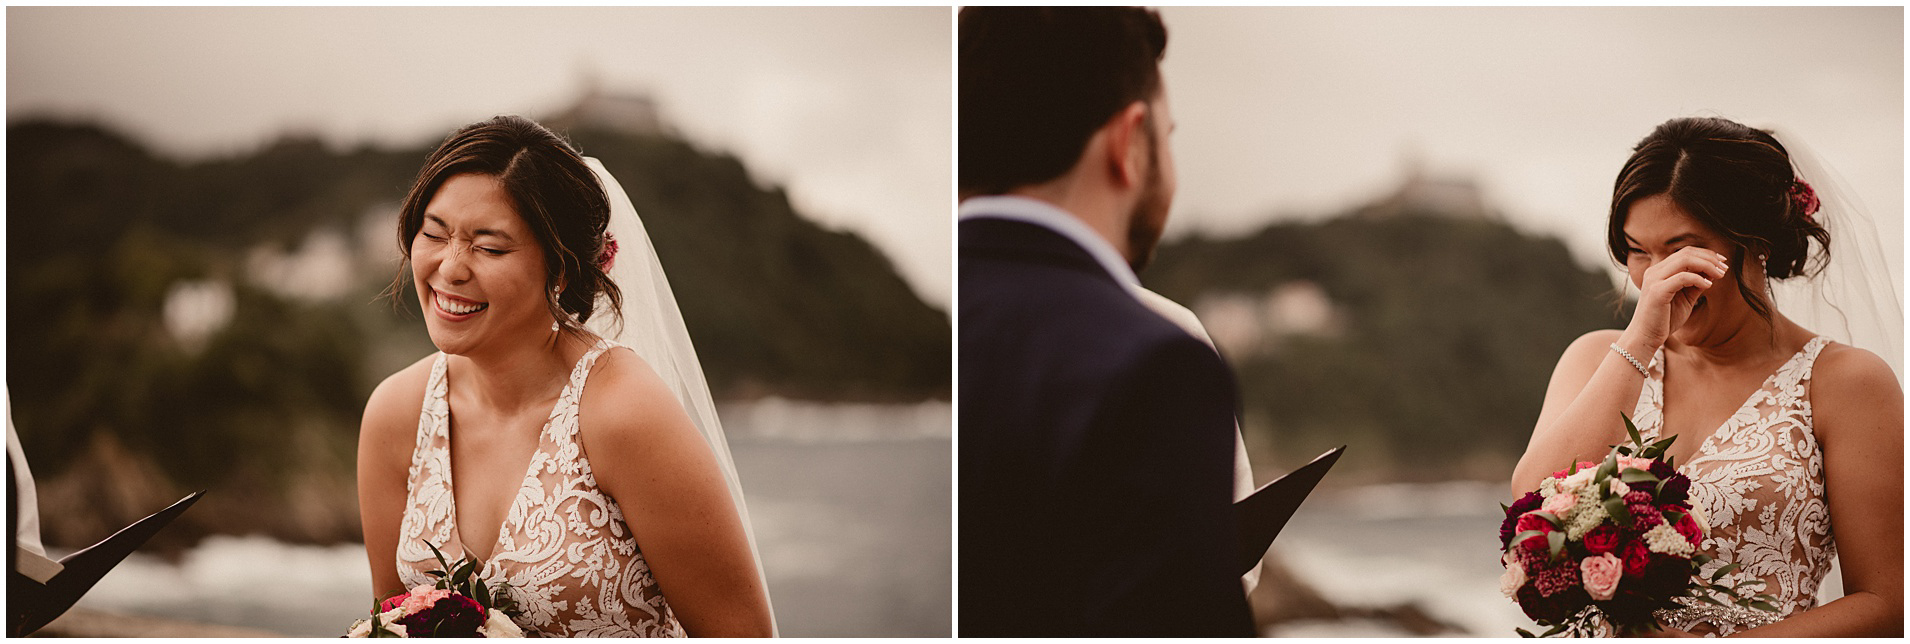 Brian & Julia - Destination wedding in San Sebastián  - Elopement in San Sebastian- ARTEFOTO33.jpg